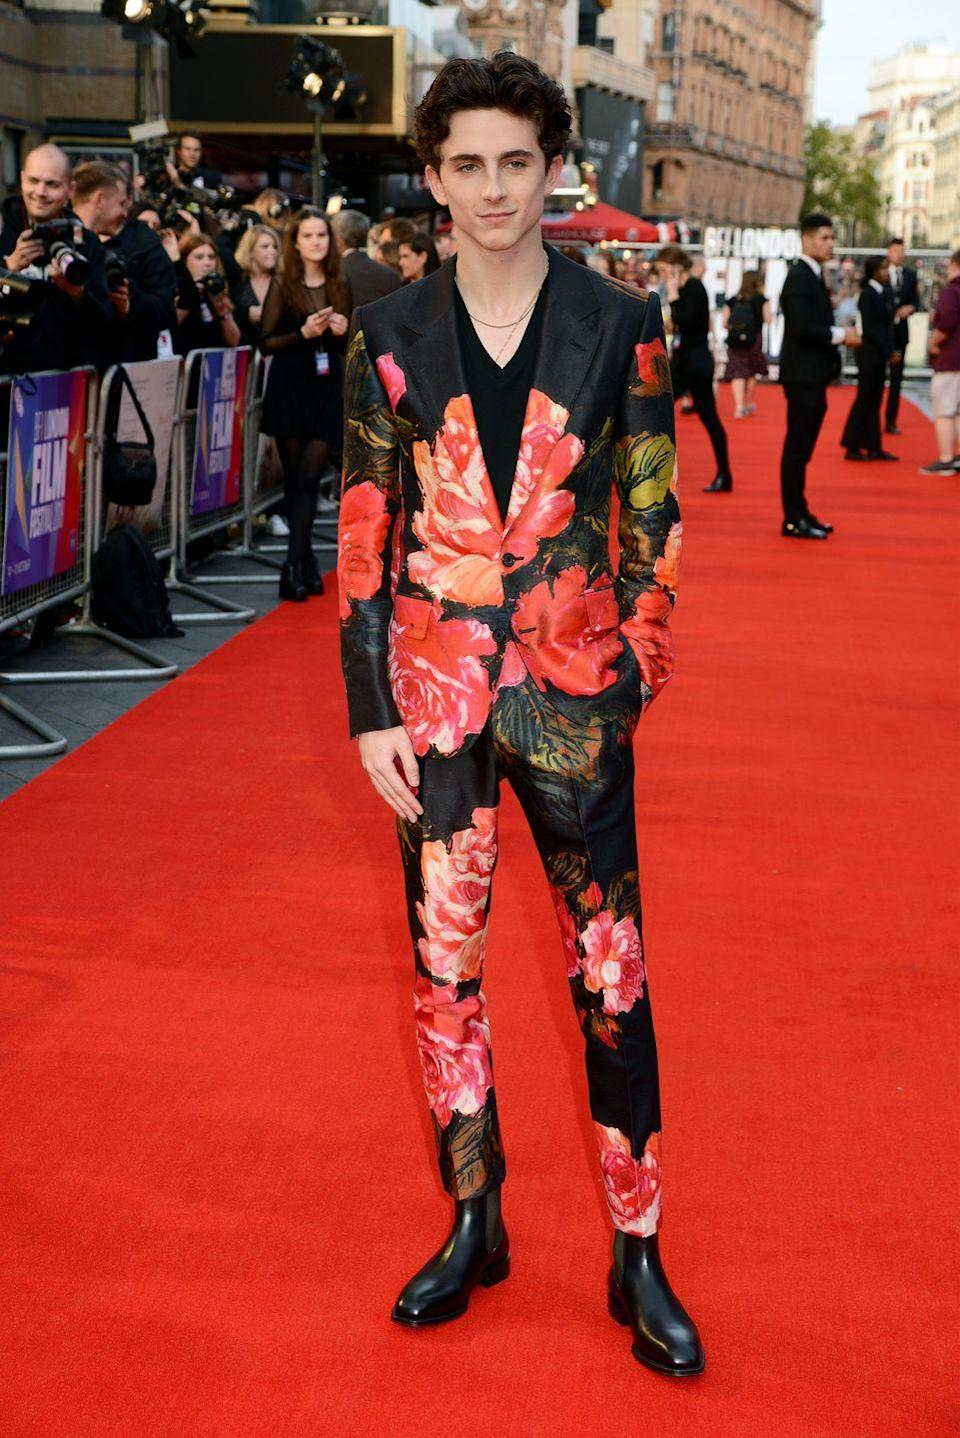 <p>Searing florals are an Alexander McQueen signature, and Chalamet is the best sort of scribe. It's the usual two-piece made unusual. It's red carpet appropriate but not standard fodder. It's Chalamet just doing what he always does, to be honest – and it works.</p>